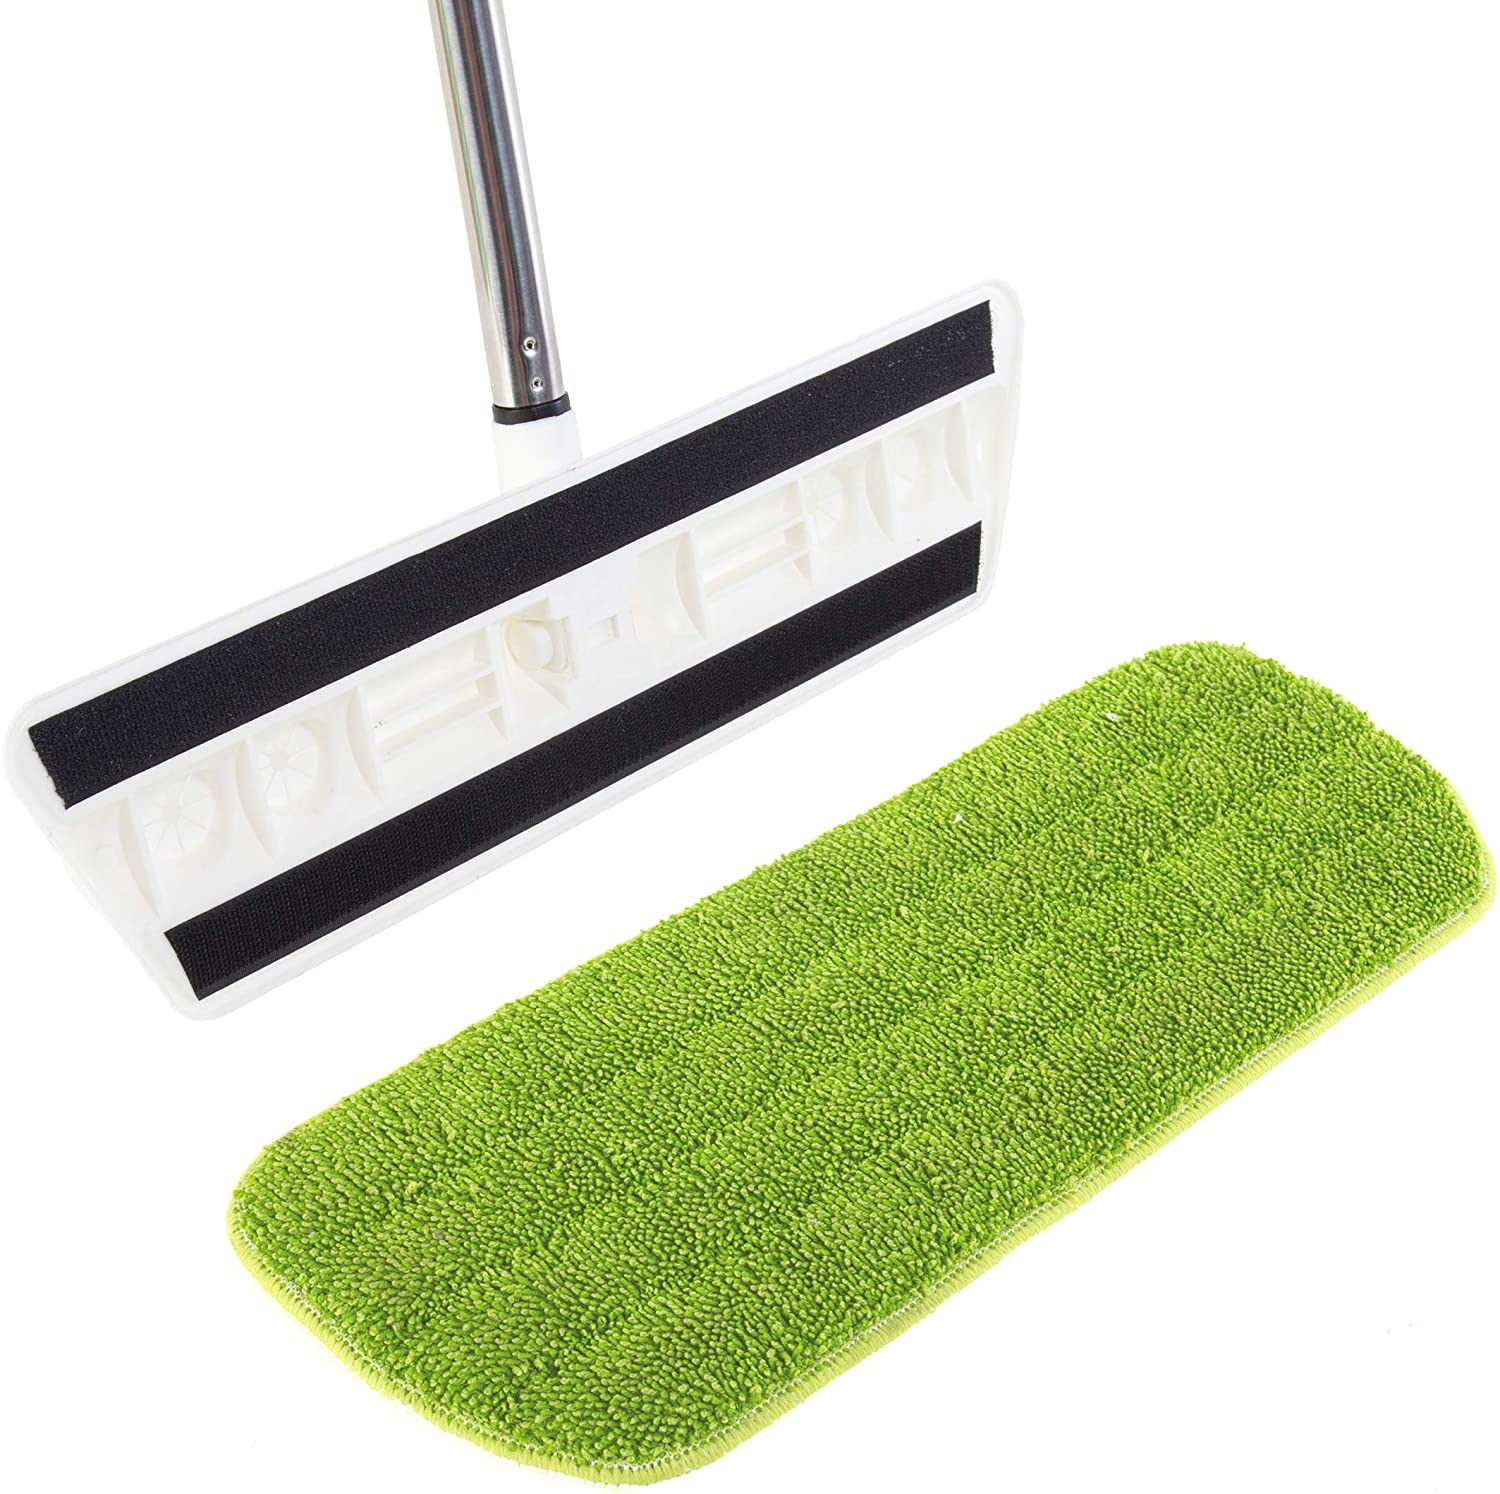 """Kitchen + Home Hardwood Floor Flat Mop with 17"""" Washable Reusable Microfiber Pads for Wet or Dry Floor Cleaning – Safe for All Surfaces"""